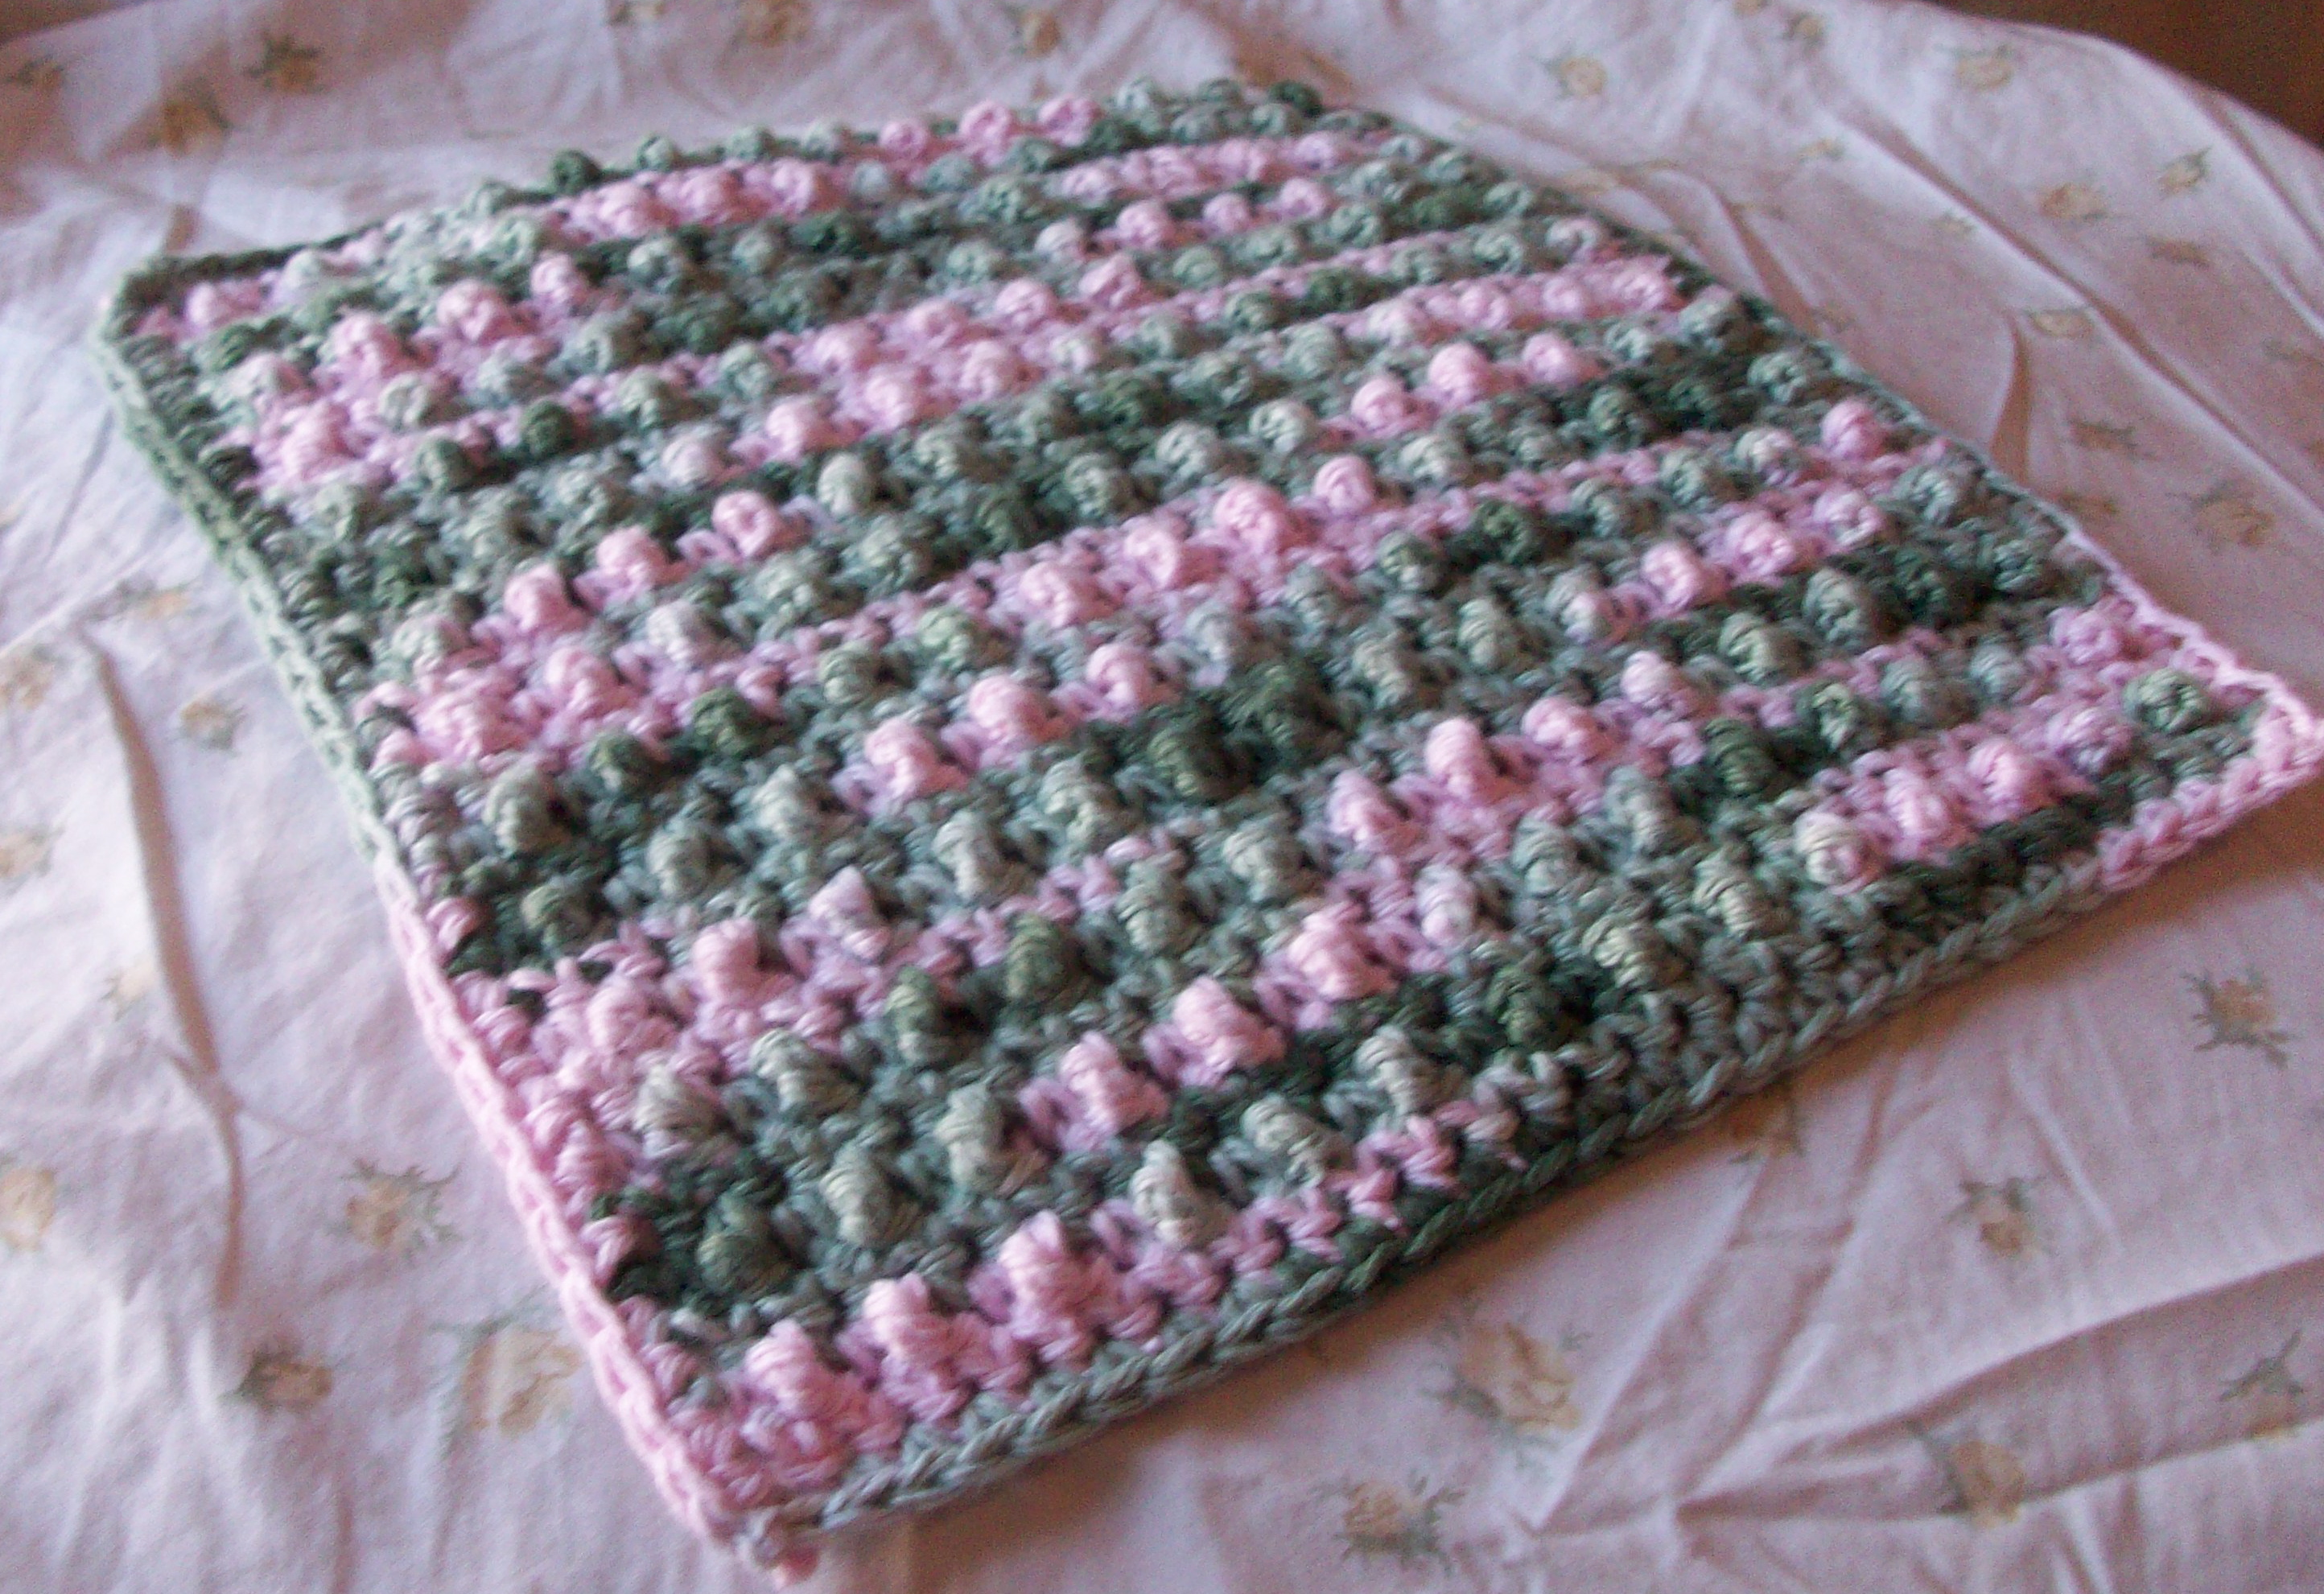 Crochet Stitches Dishcloths : Crochet Dishcloths : Maggie Weldon, Free Crochet Patterns